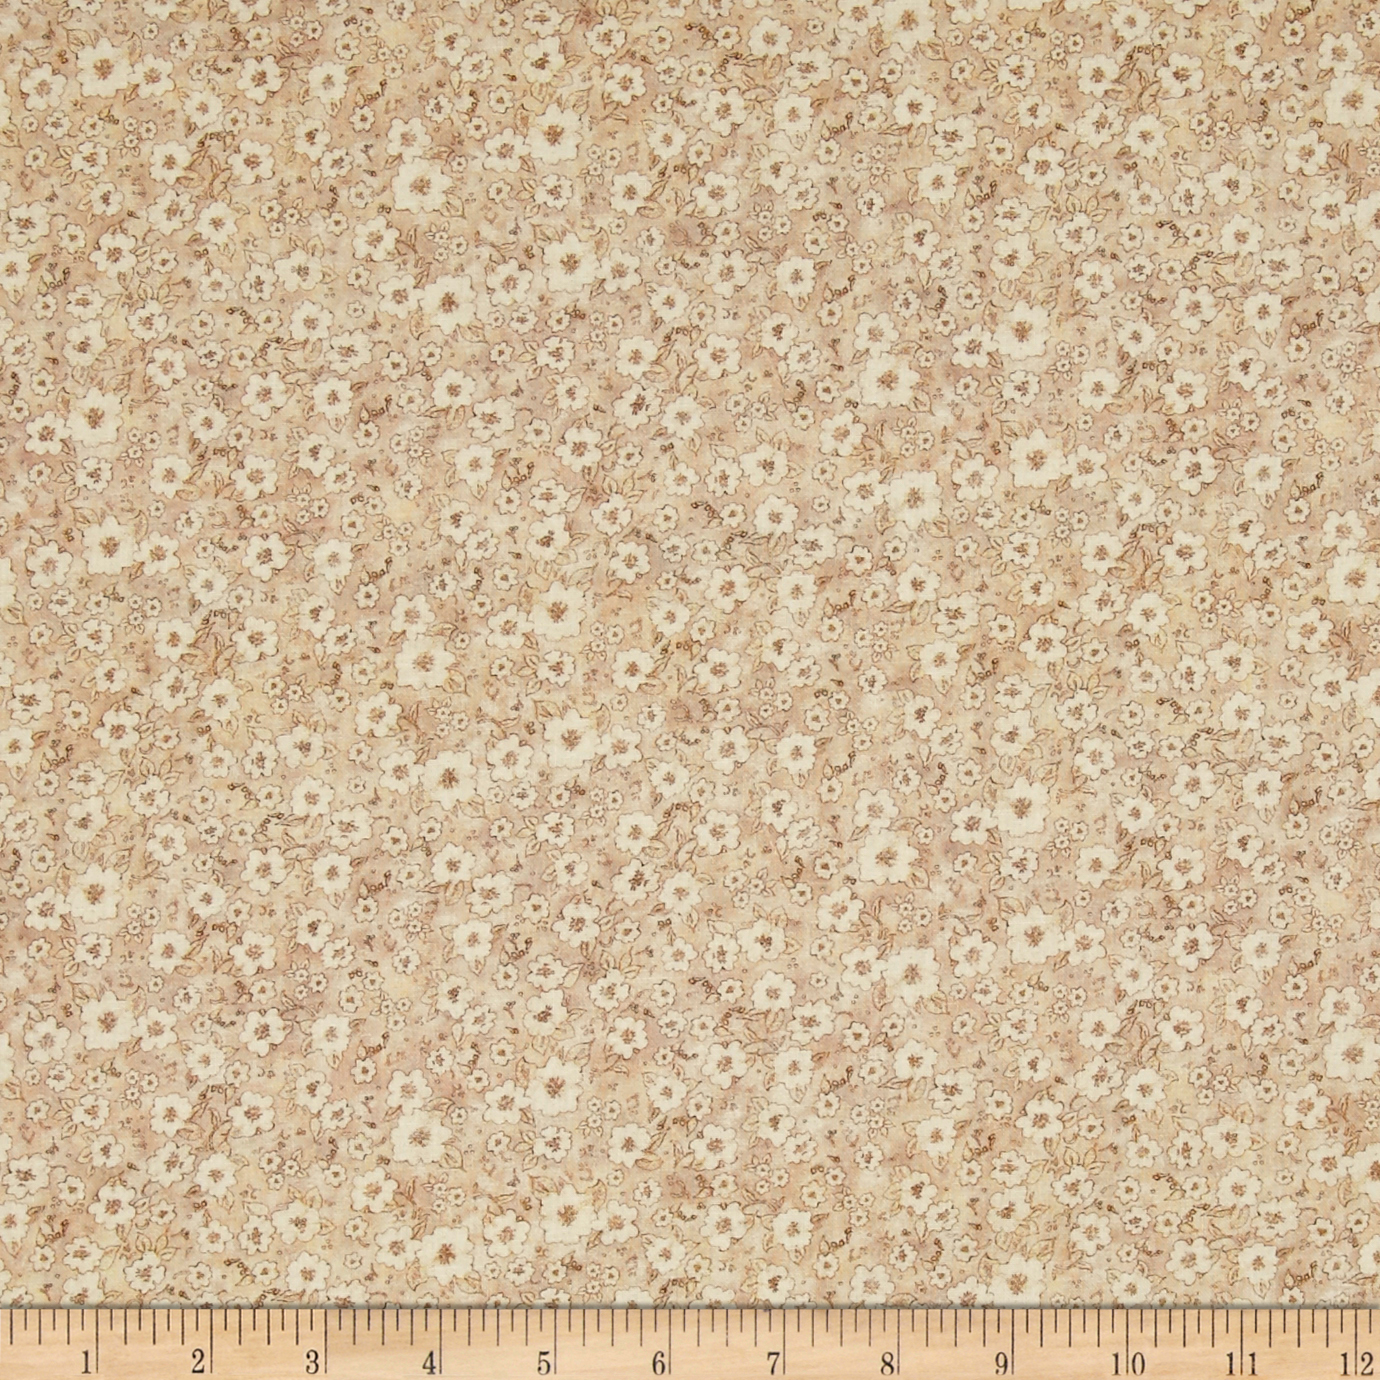 Mia Country Flock Digital Print Floral Texture Beige Fabric by E. E. Schenck in USA